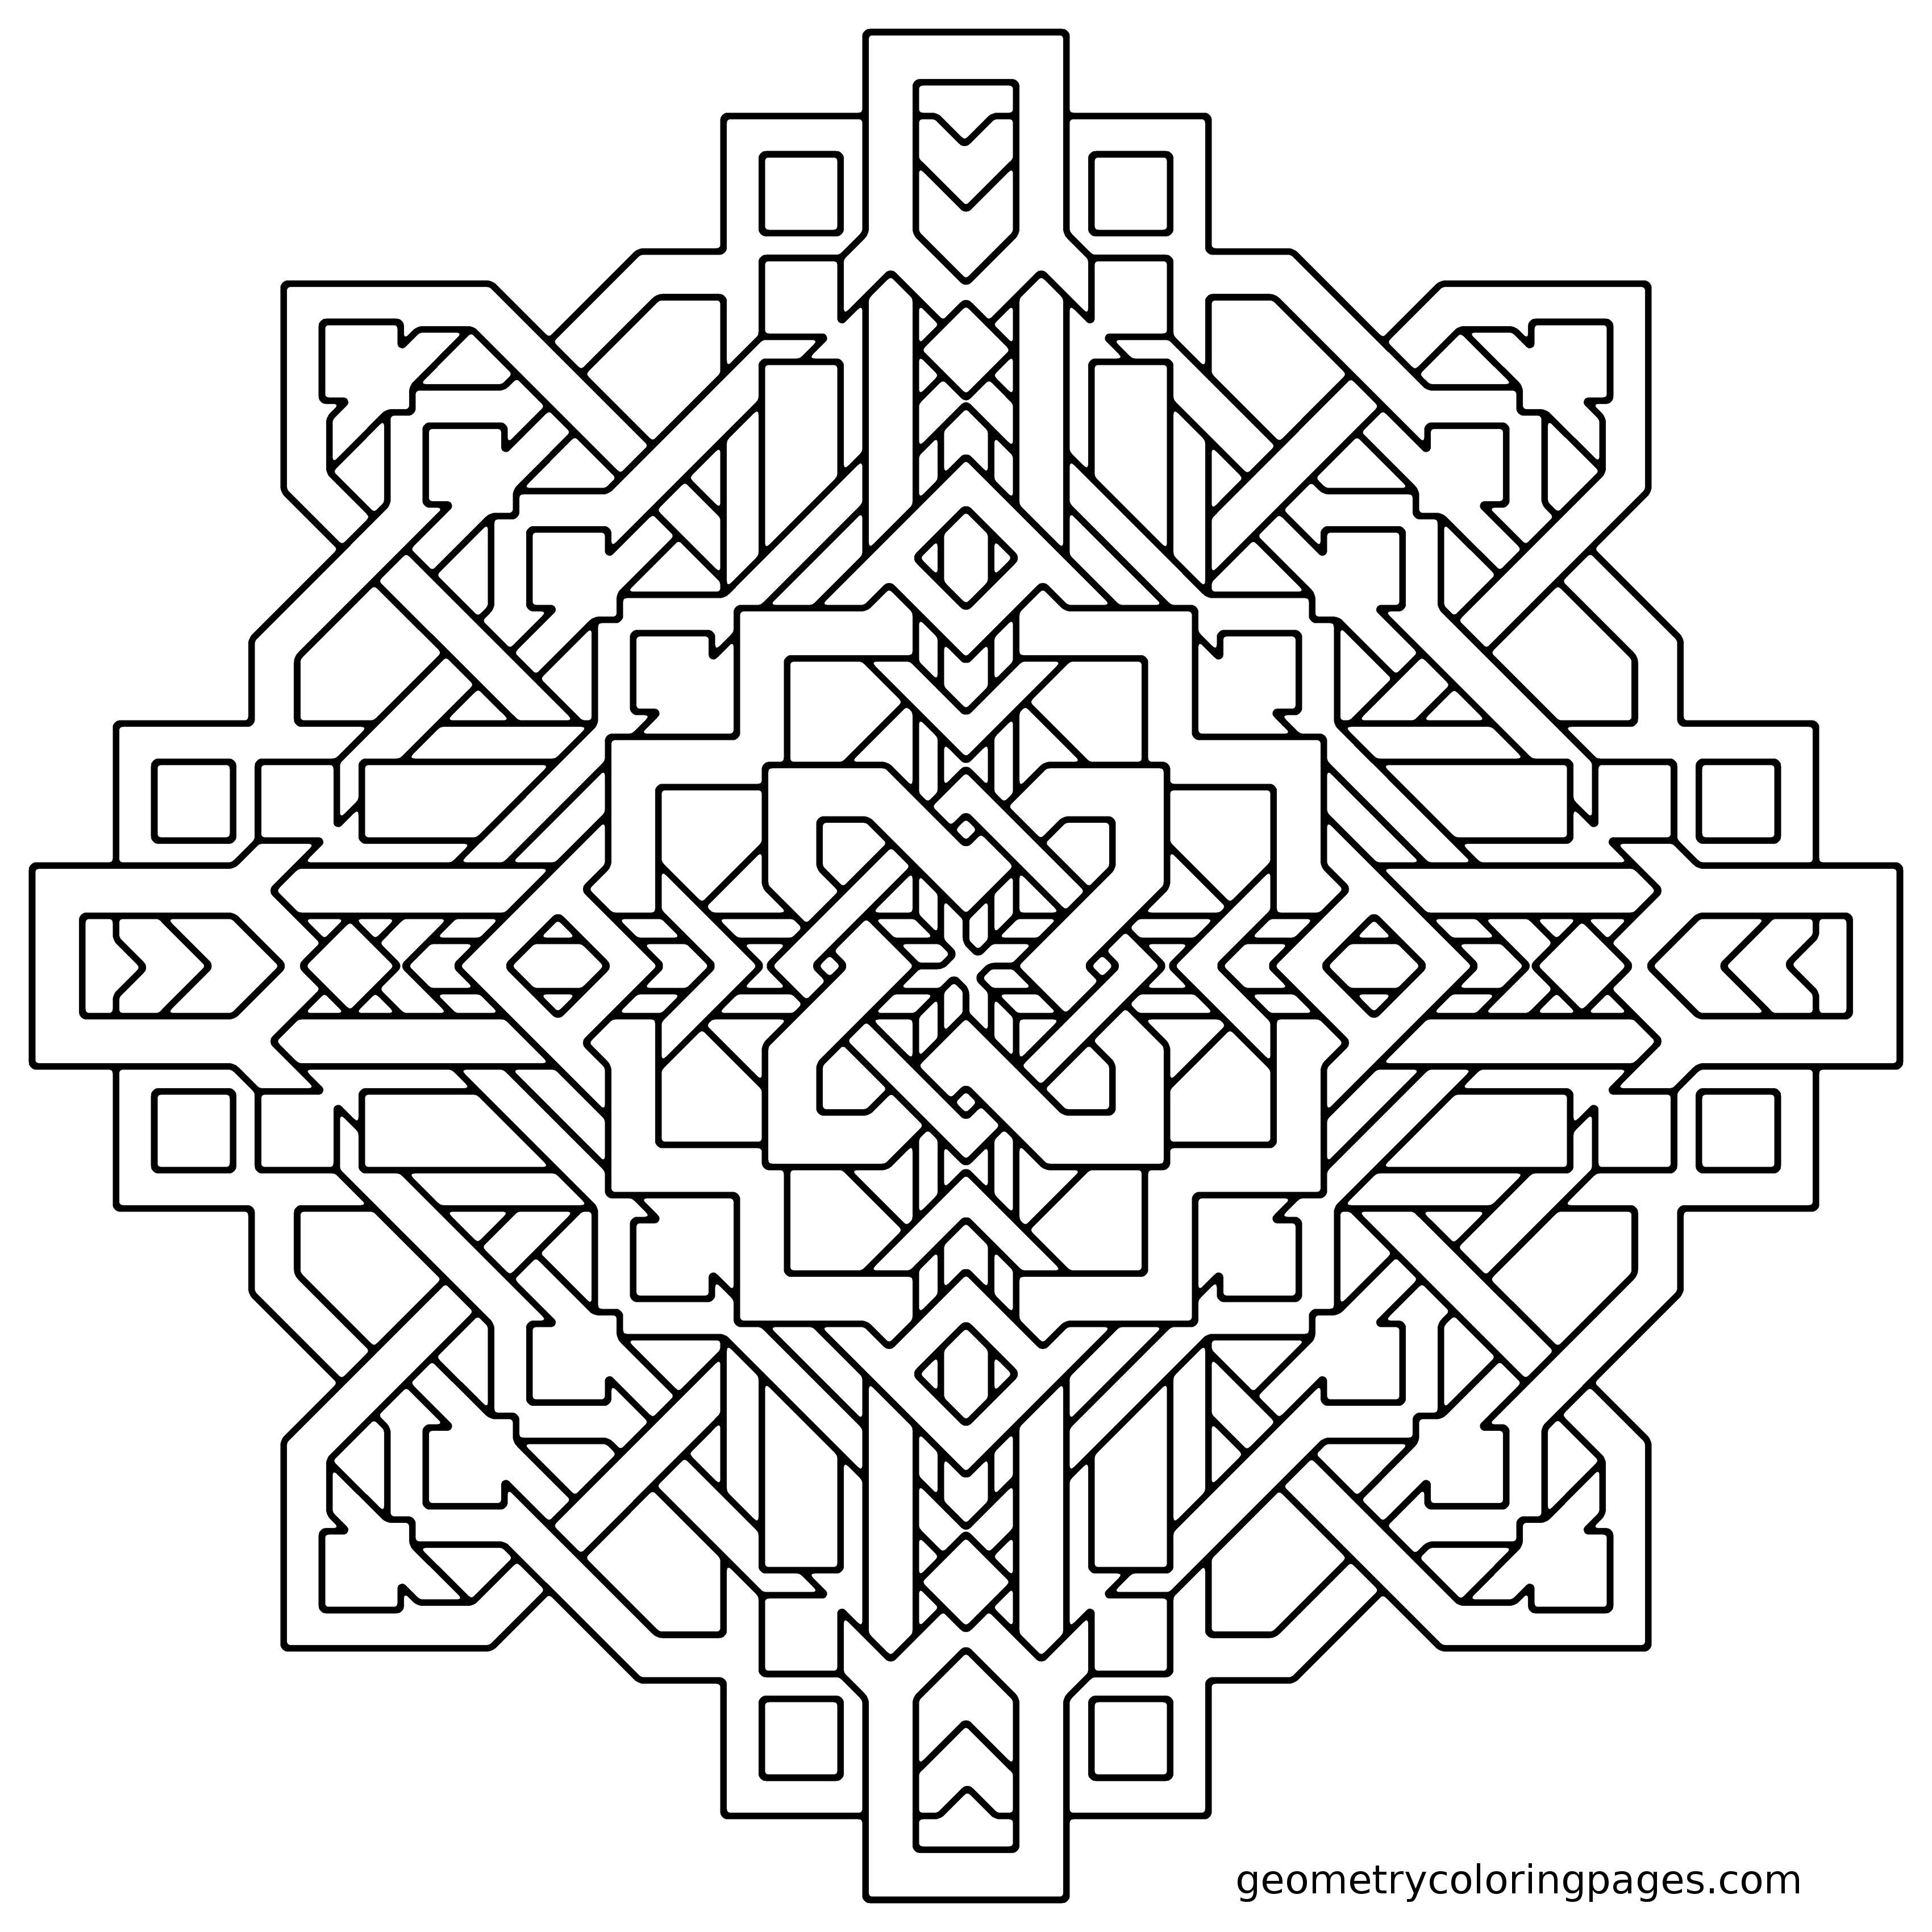 Geometry Coloring Pages All Age Coloring Pages Geometric Coloring Pages Shape Coloring Pages Mandala Coloring Pages